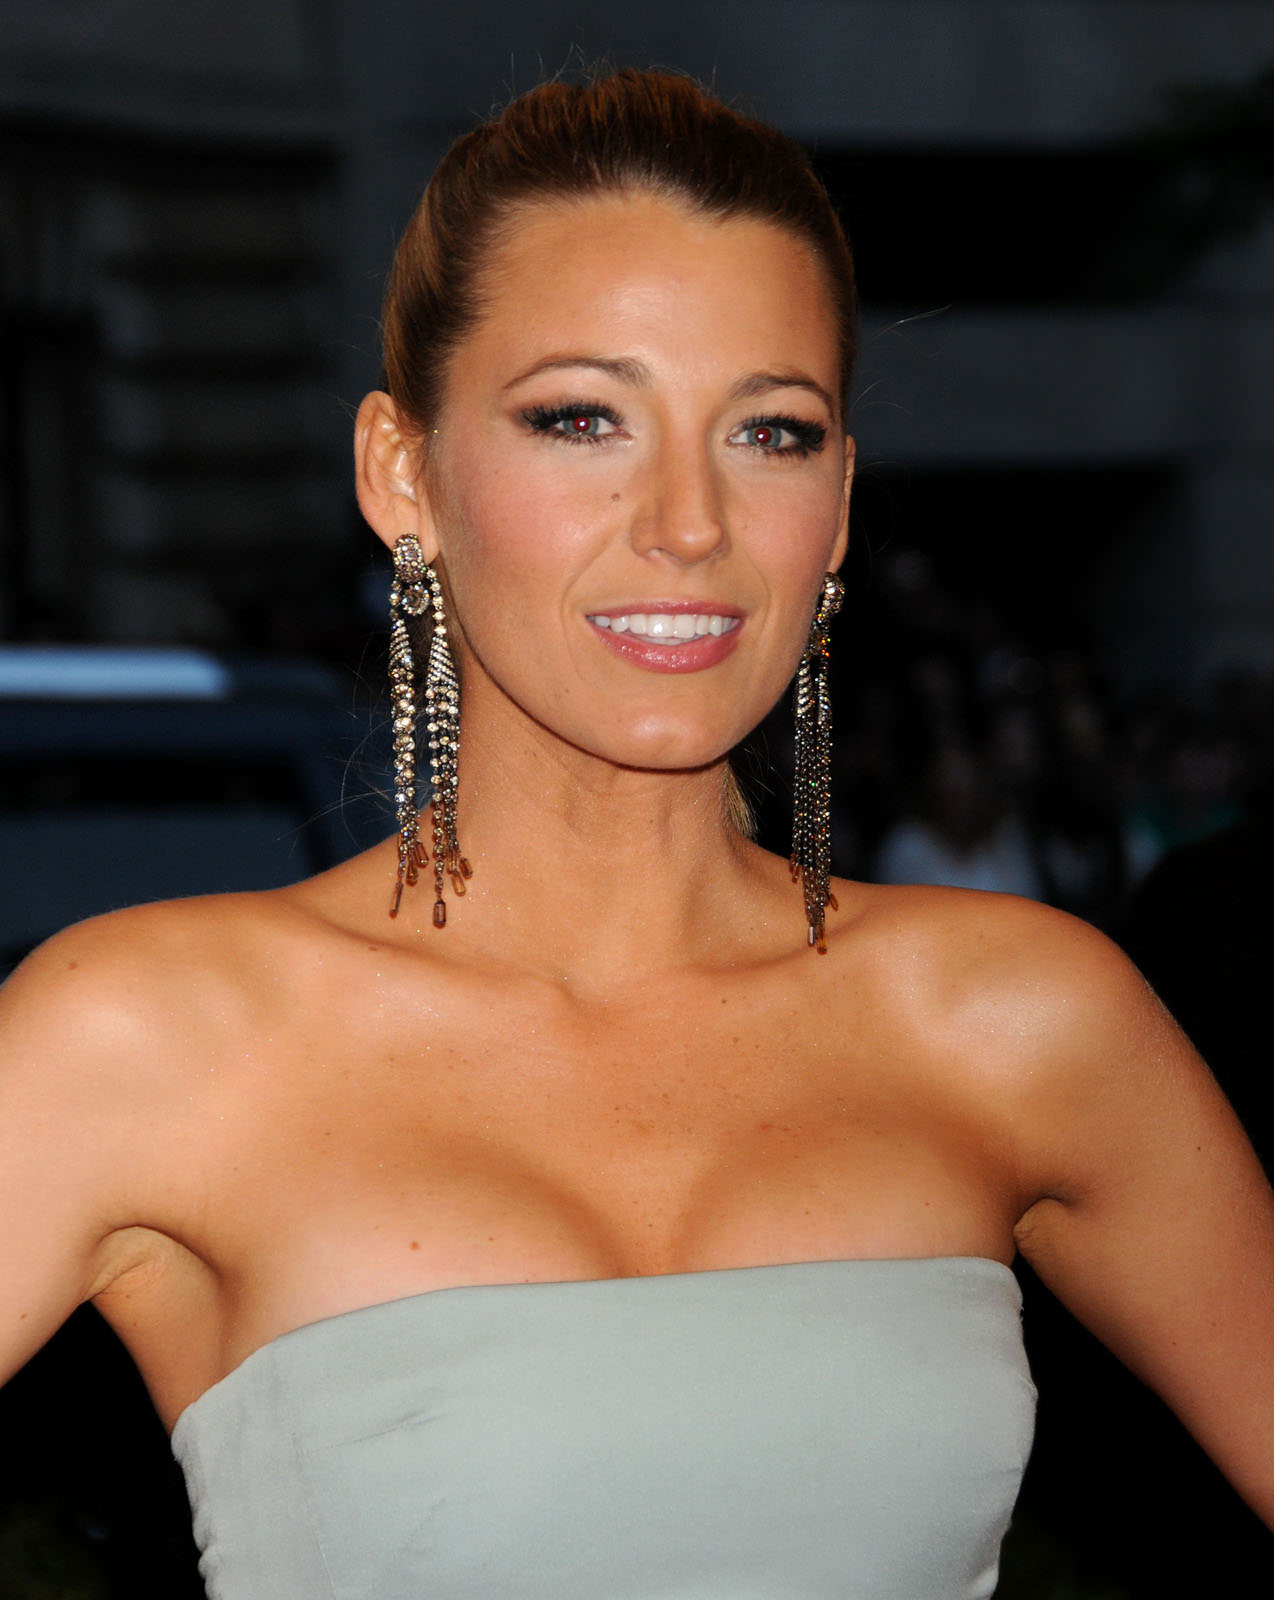 Blake Lively Photo Gallery